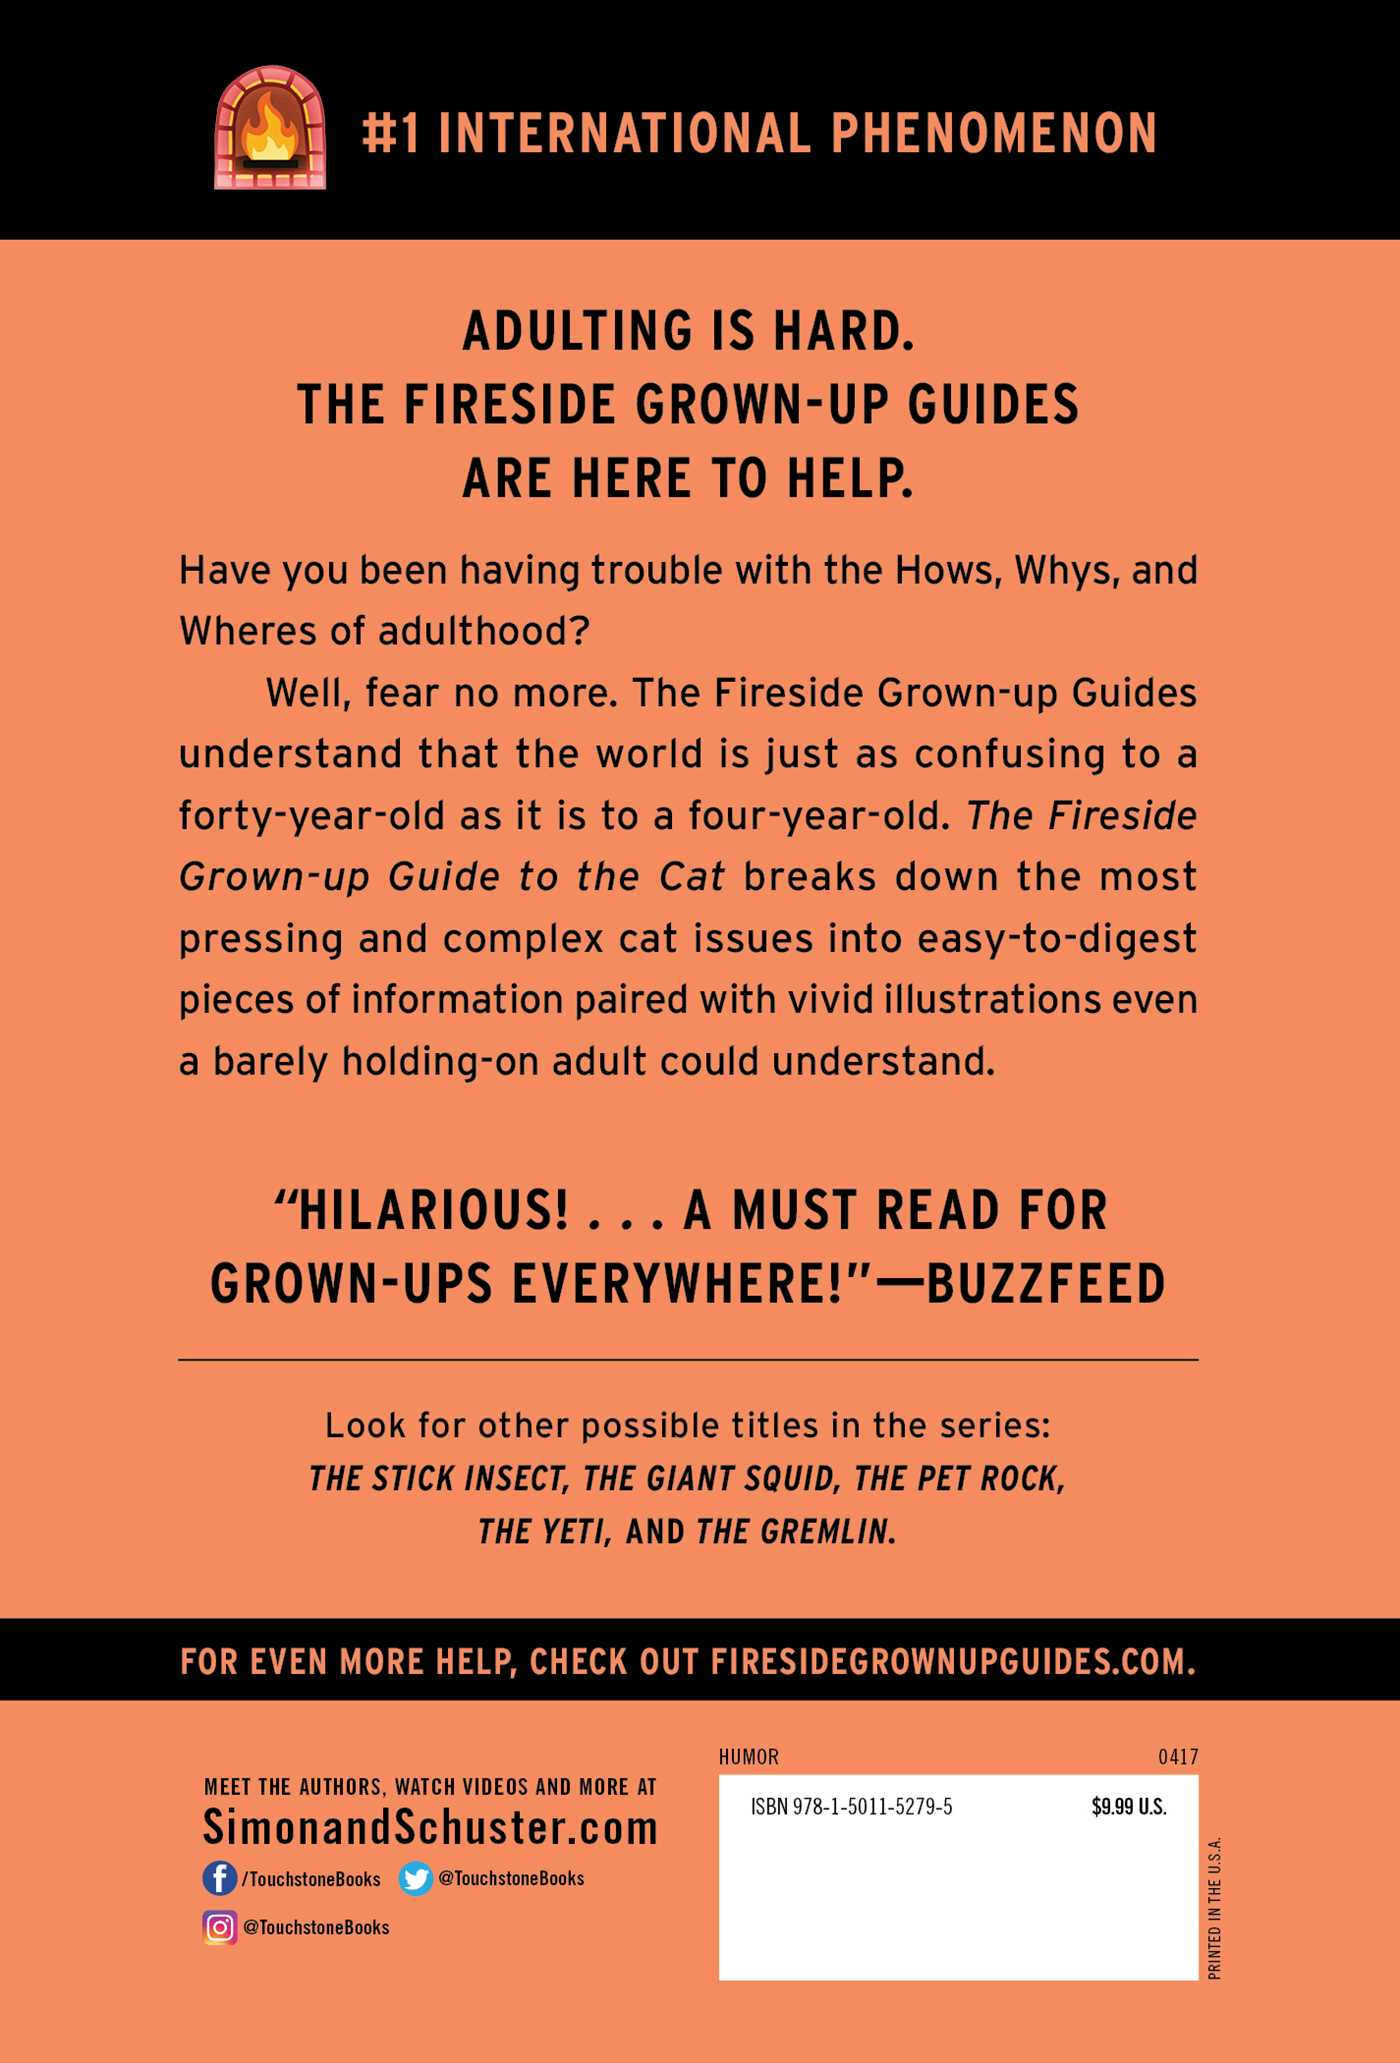 The fireside grown up guide to the cat 9781501152795 hr back